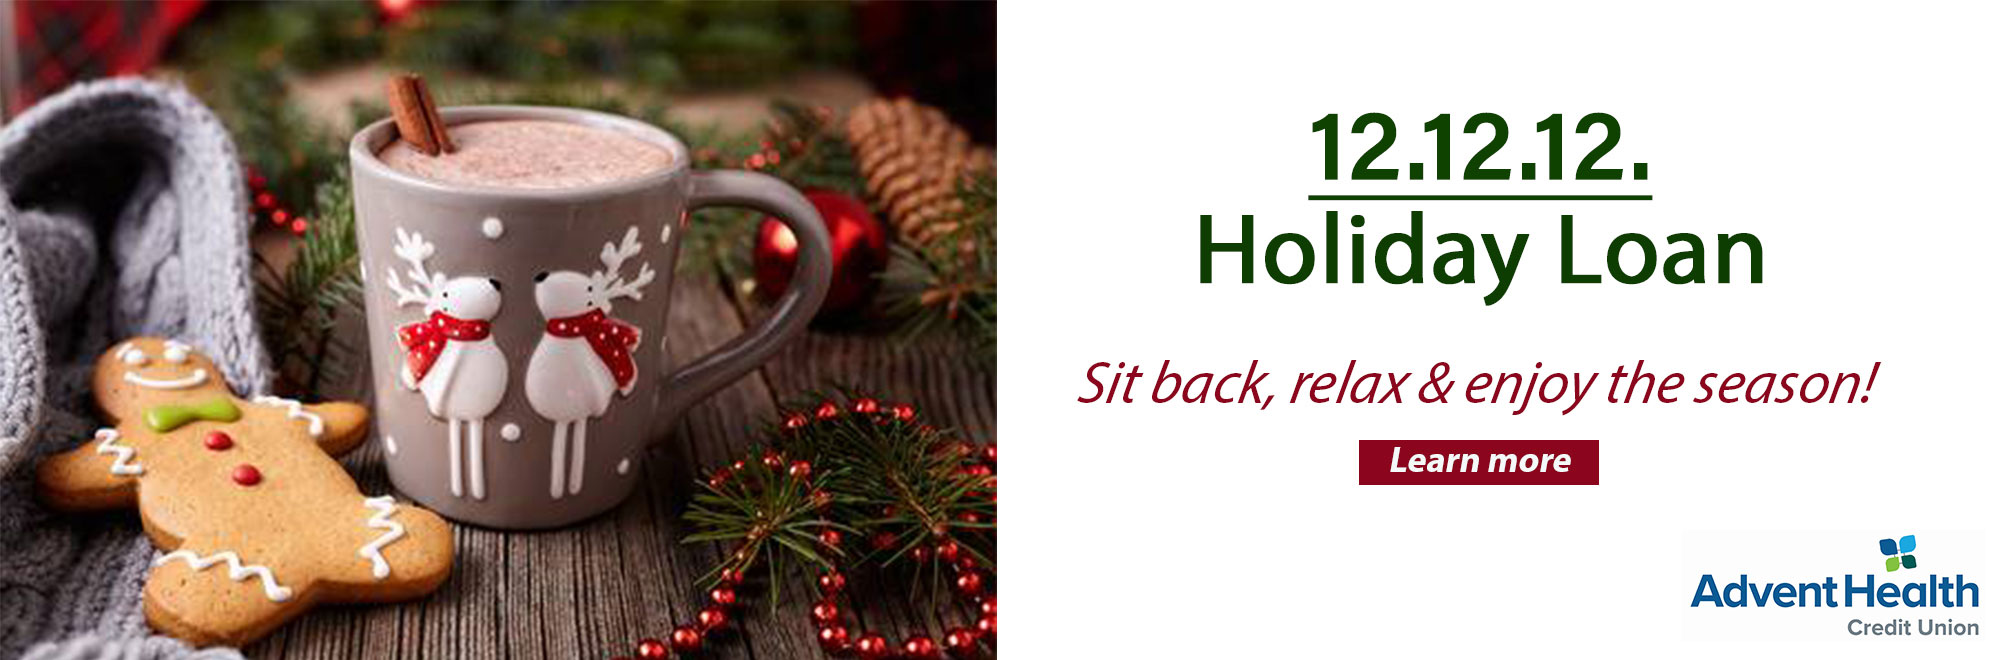 Sit back, relax, & enjoy the season with our 12.12.12. Holiday Loan